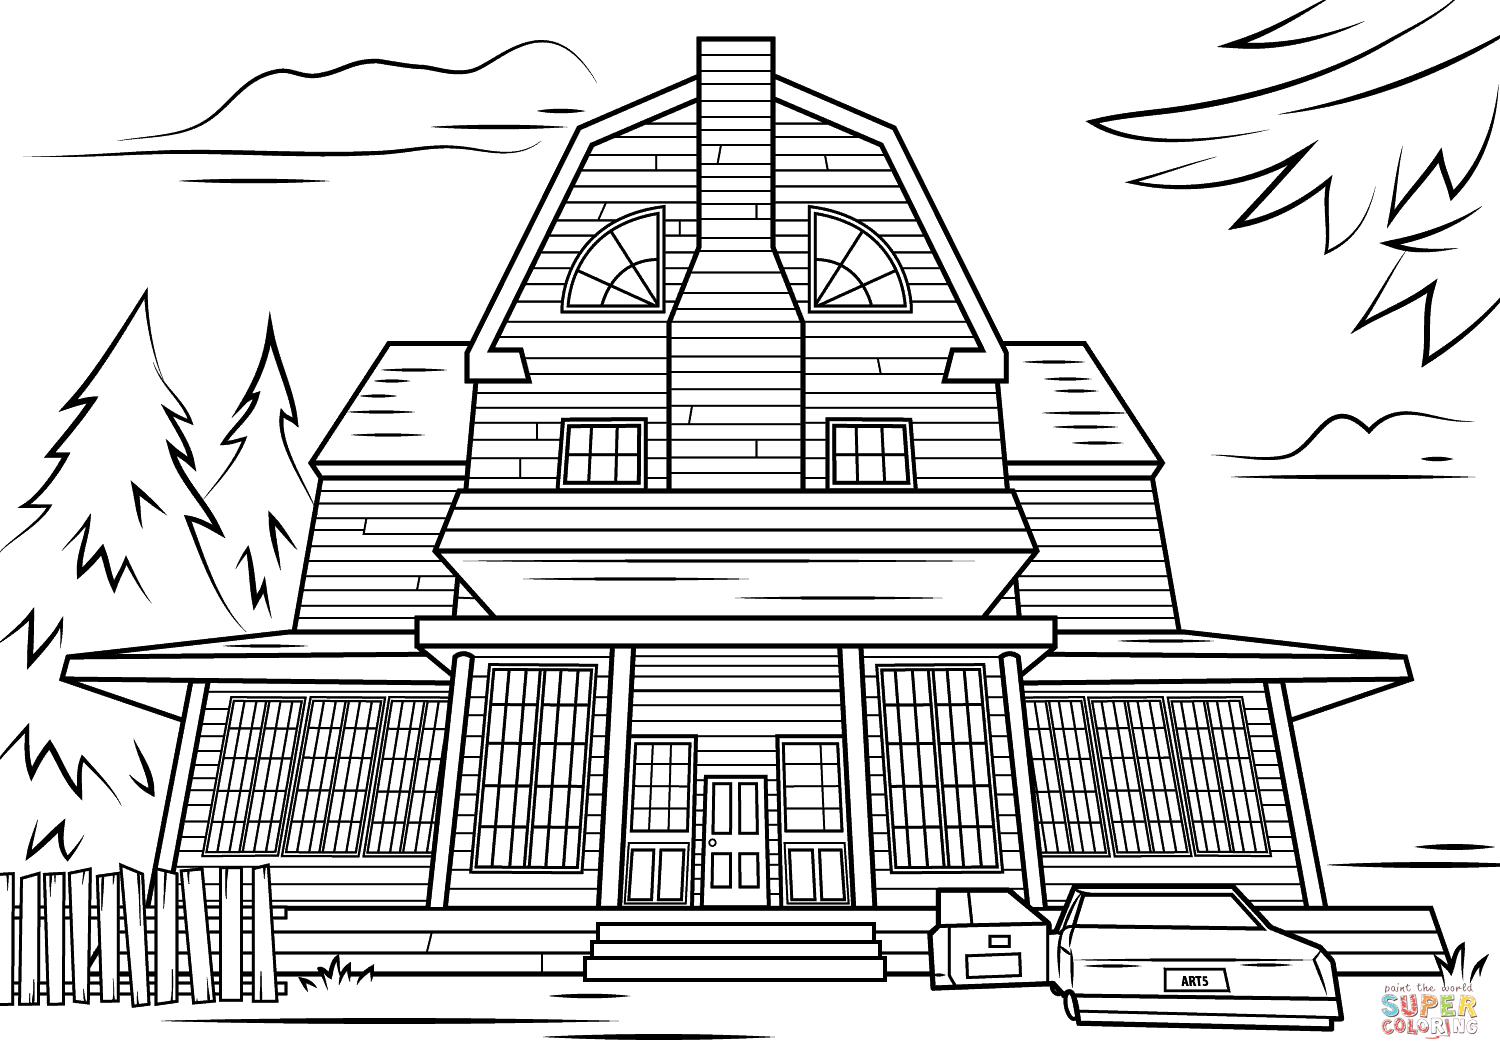 USA-Printables: US Presidents Coloring Pages - The White House ... | 1060x1500